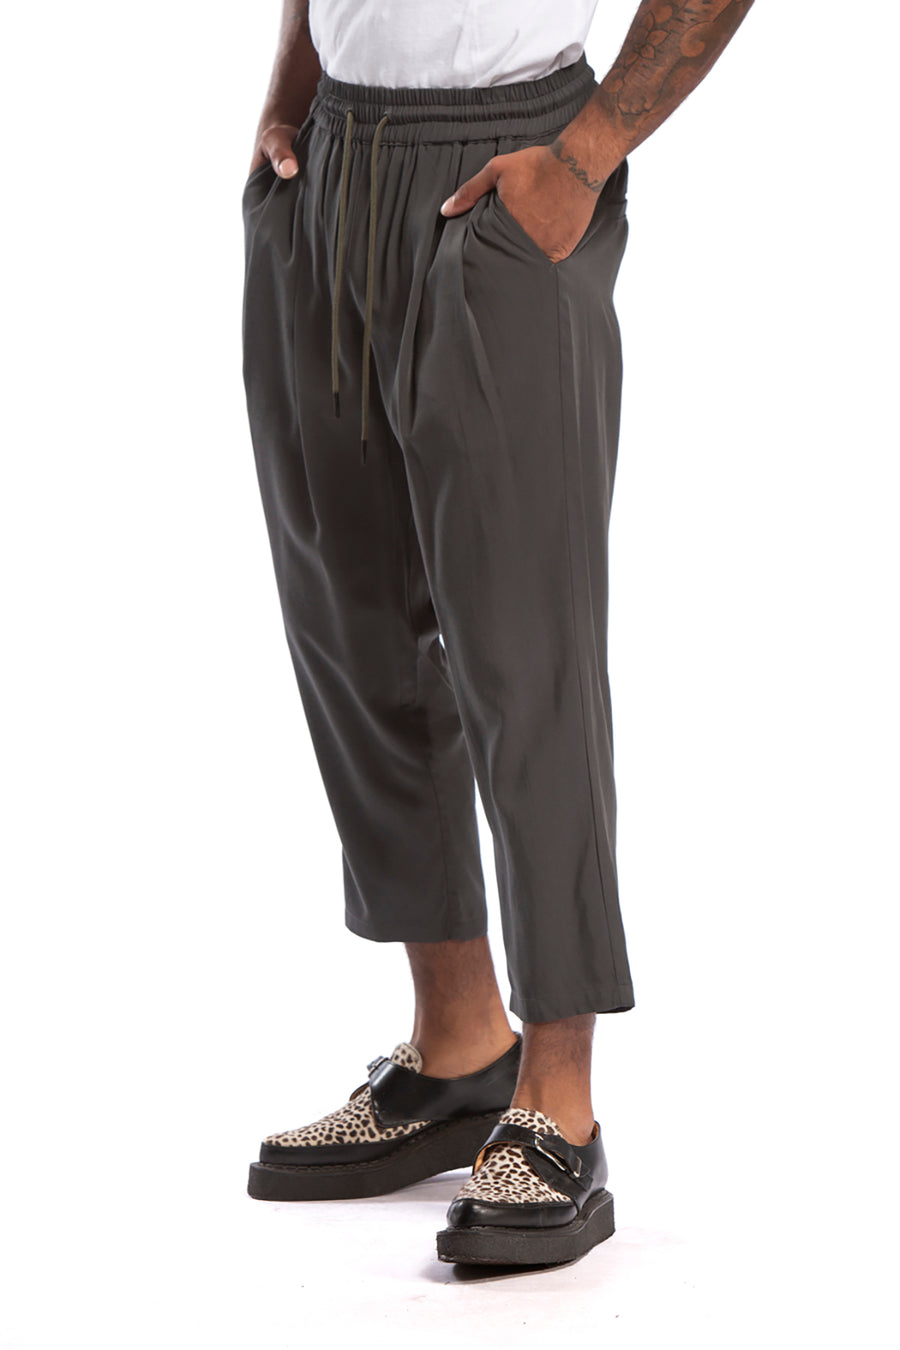 candorofficial - Lakewood Ankle Pant, Charcoal - Bottoms